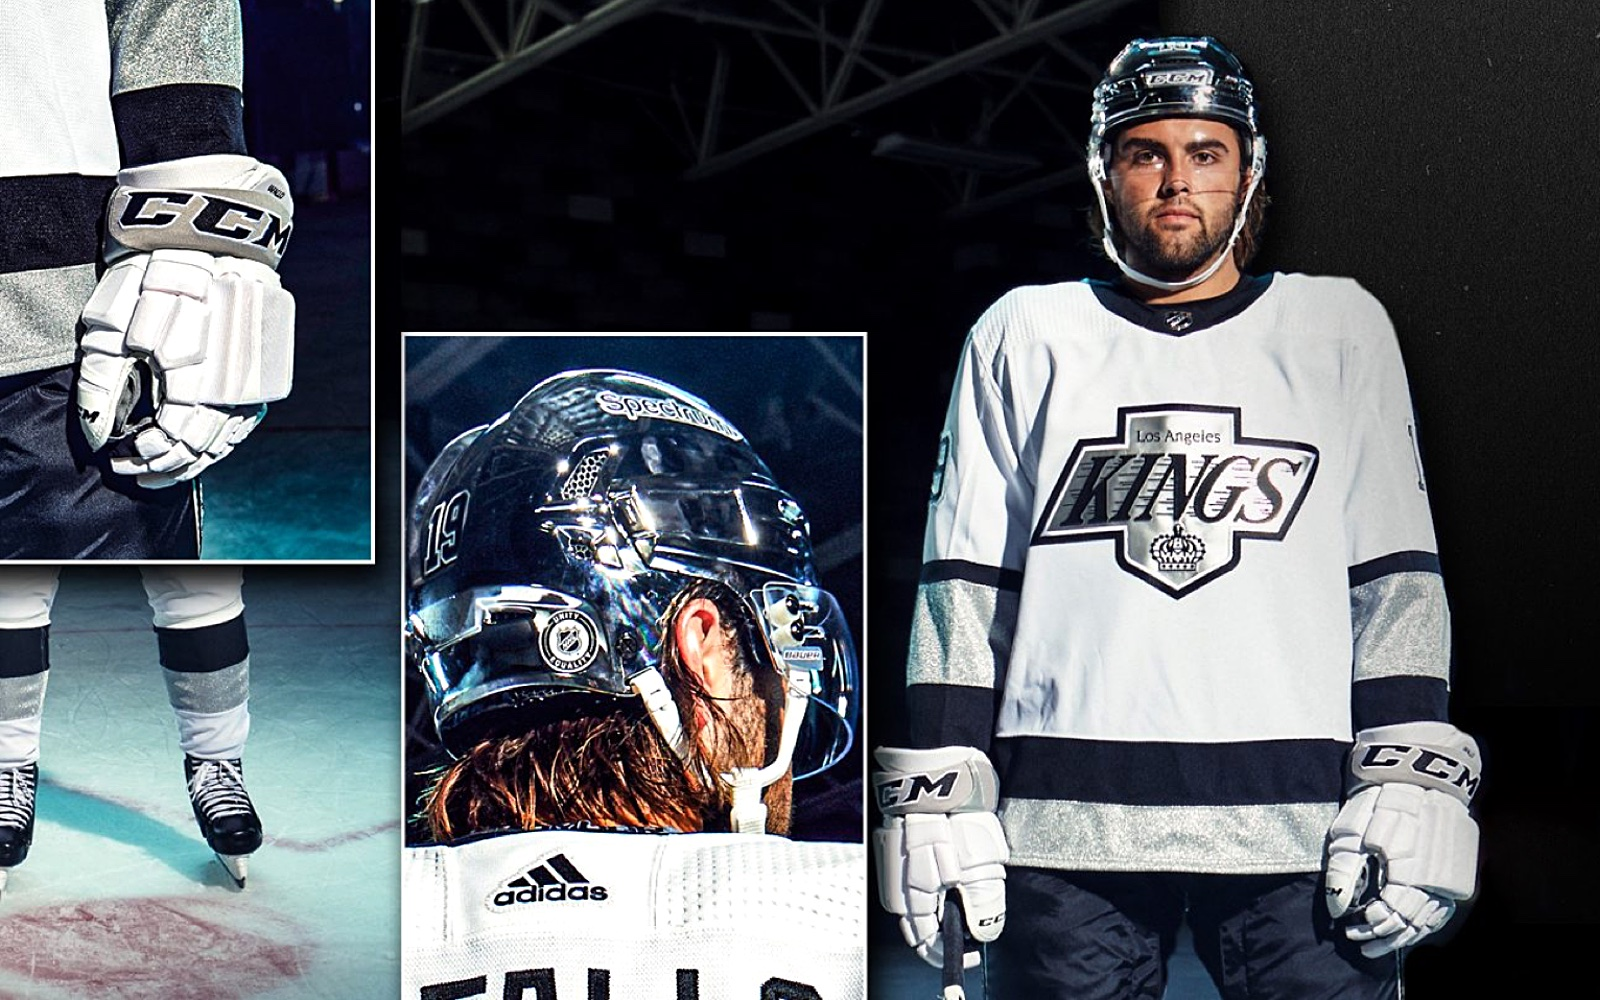 L.A. Kings reveal third jersey with retro feel